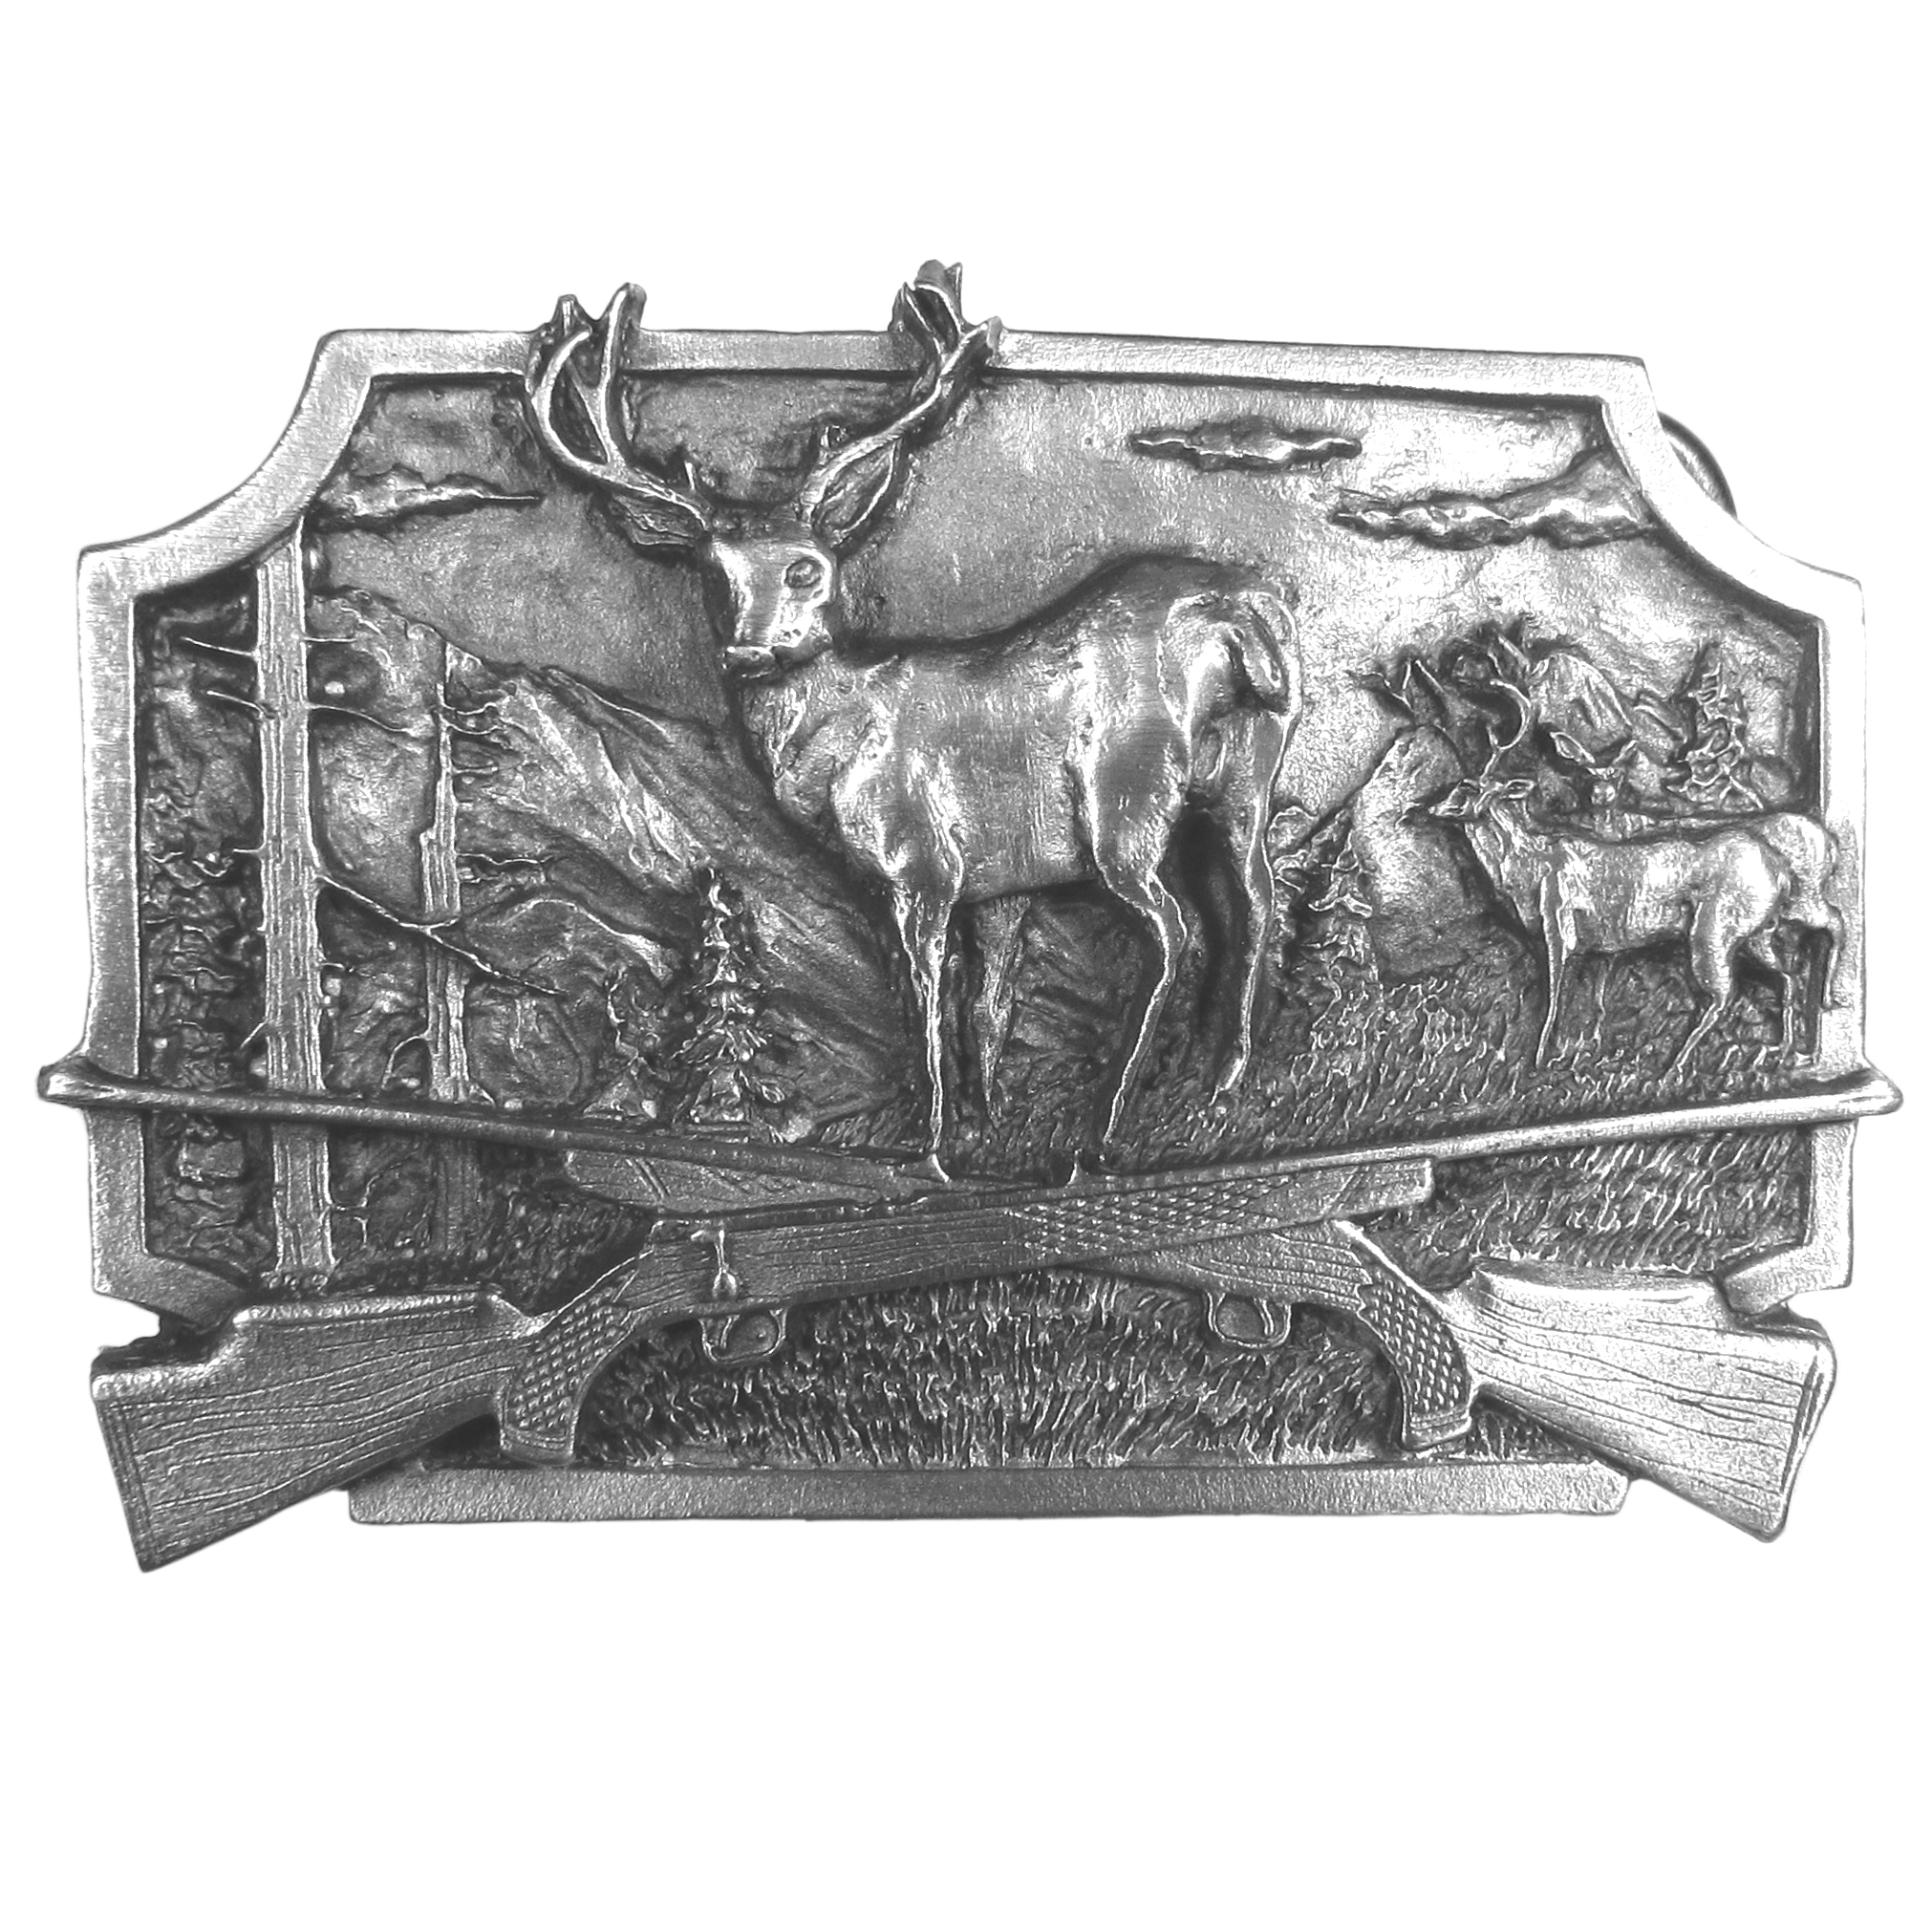 "Deer Hunting Antiqued Belt Buckle - ""A beautifully designed image of 3 deer, 2 bucks and a doe, are the highlight of this antiqued buckle.  Other images include two crossed rifles,  the mountains, field, trees, and clouds.  This exquisite carved buckle is made of fully cast metal with a standard bale that fits up to 2"""" belts.  Siskiyou's unique buckle designs often become collector's items and are unequaled in craftsmanship.  Made in the USA"""